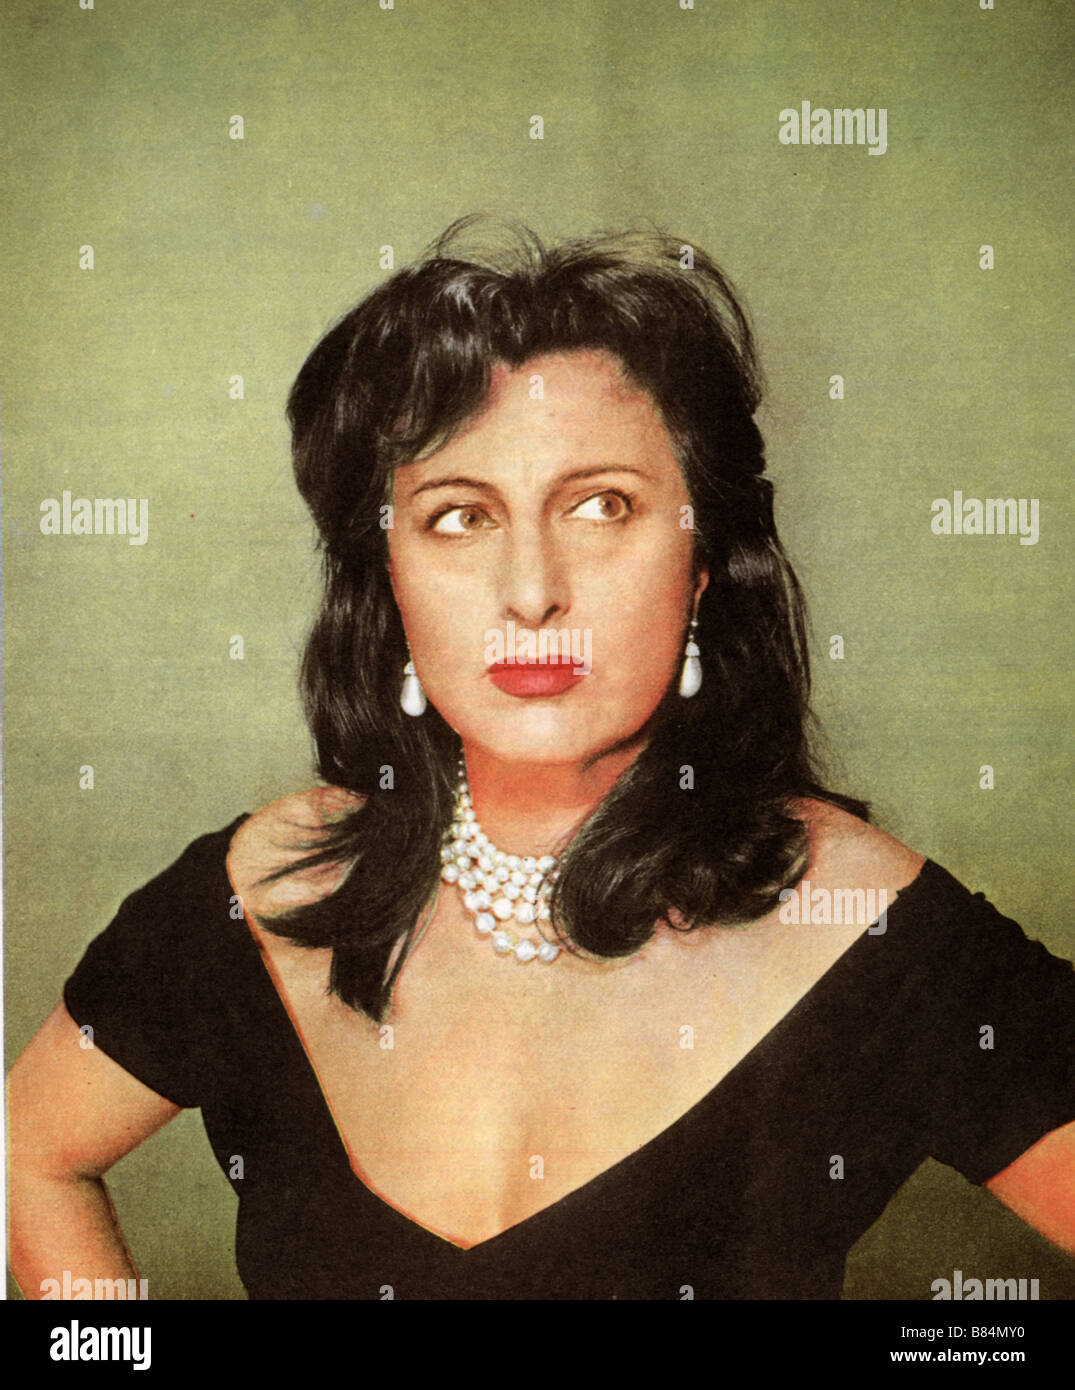 Bien connu ANNA MAGNANI THE ROSE TATTOO (1955 Stock Photo, Royalty Free Image  VD34